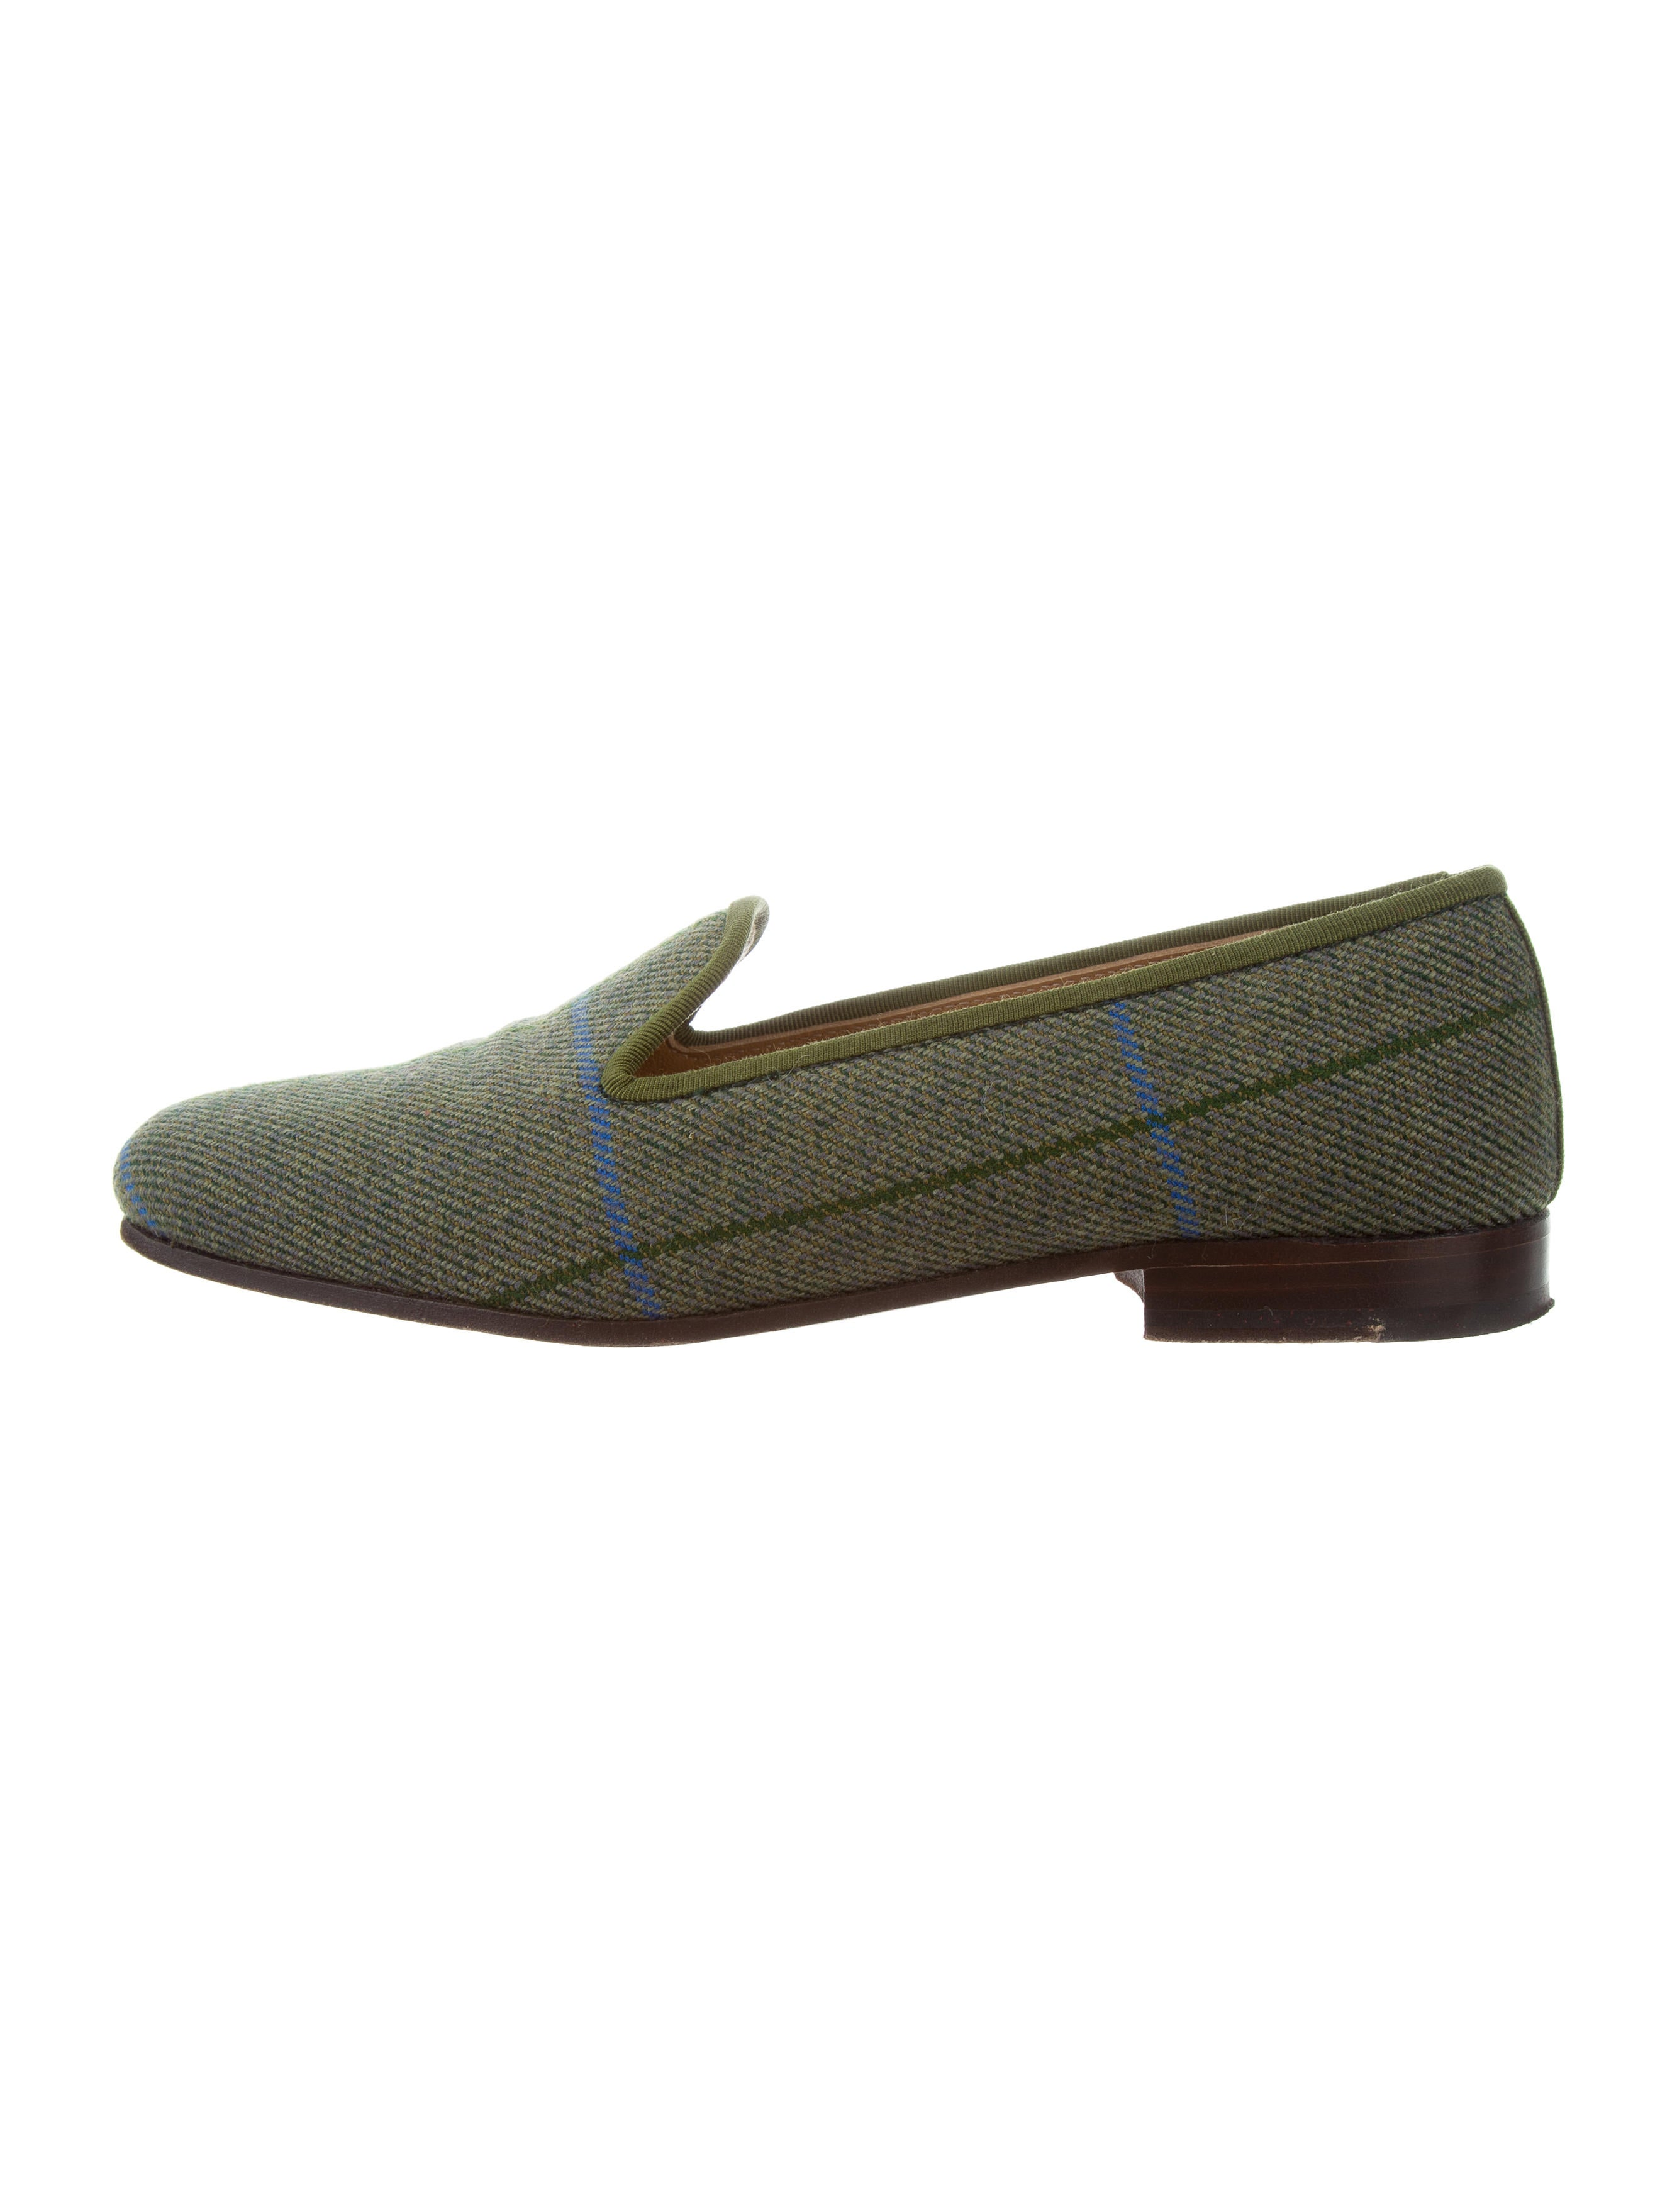 Stubbs & Wootton Knit Round-Toe Loafers in China cheap price clearance fashion Style sale get authentic genuine sale online SeOlugK